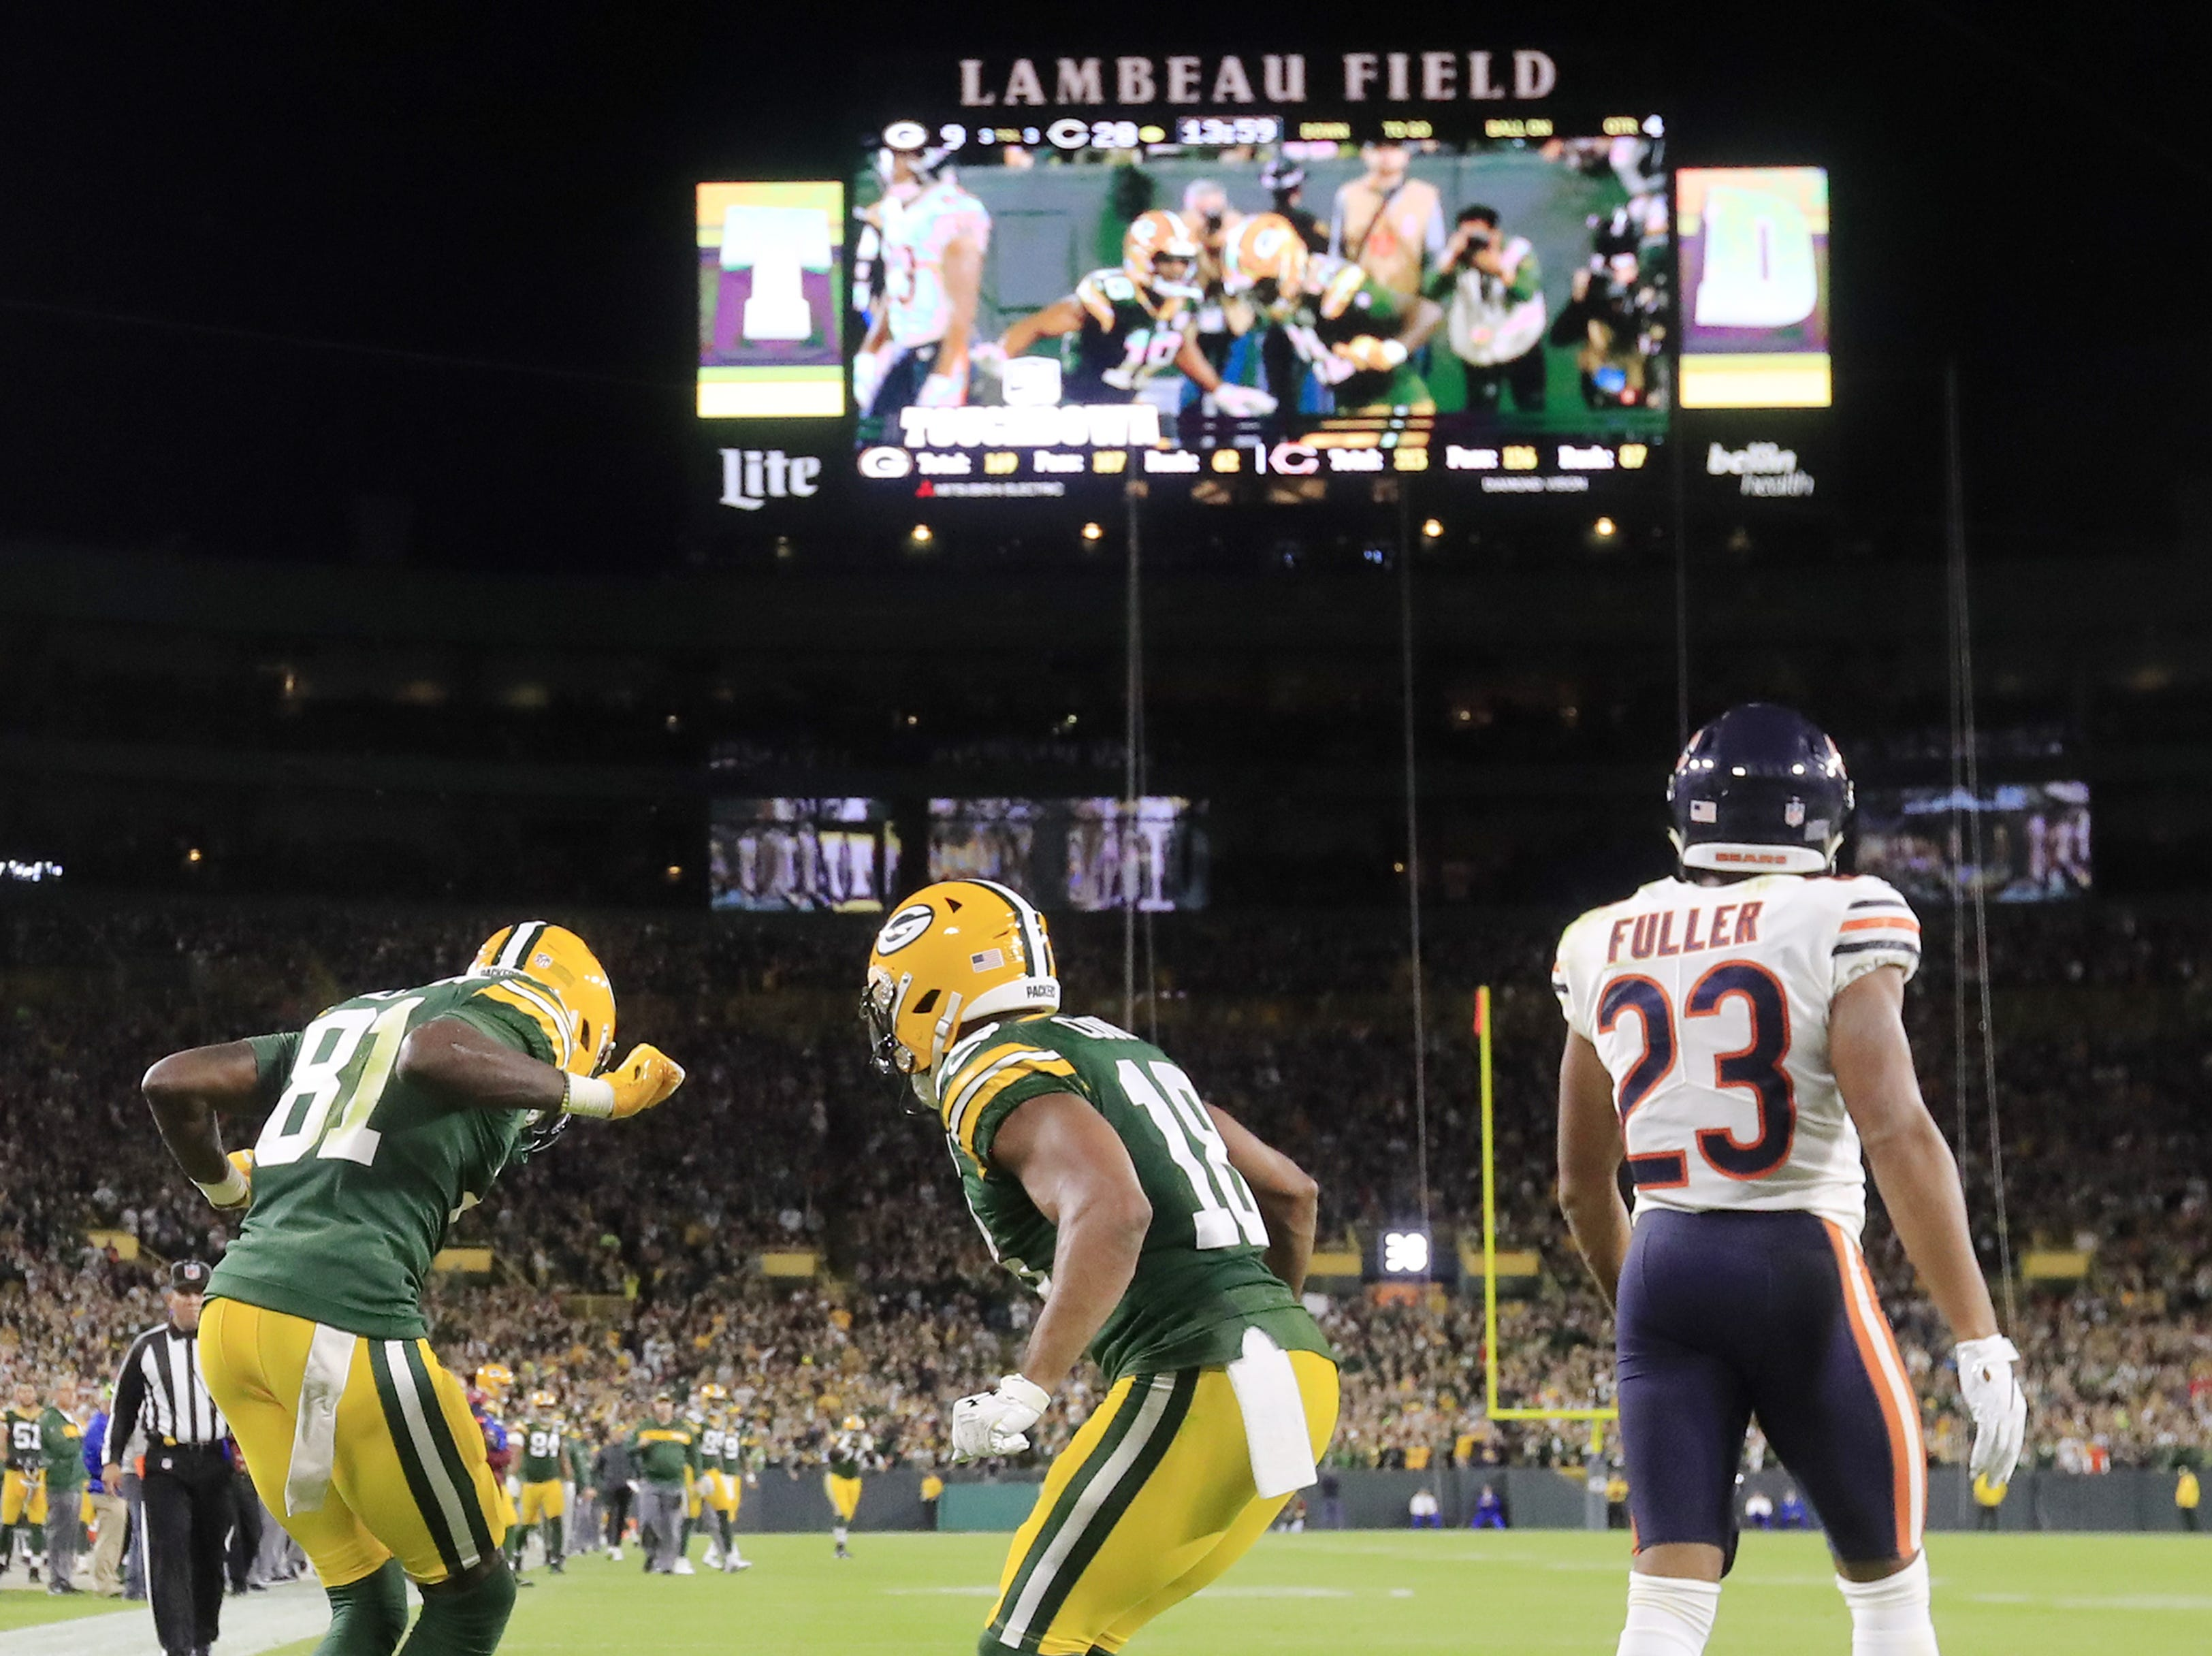 Green Bay Packers wide receiver Geronimo Allison (81) and wide receiver Randall Cobb (18) dance after a 39-yard touchdown by Allison against the Chicago Bears in the fourth quarter at Lambeau Field on Sunday, September 9, 2018 in Green Bay, Wis.